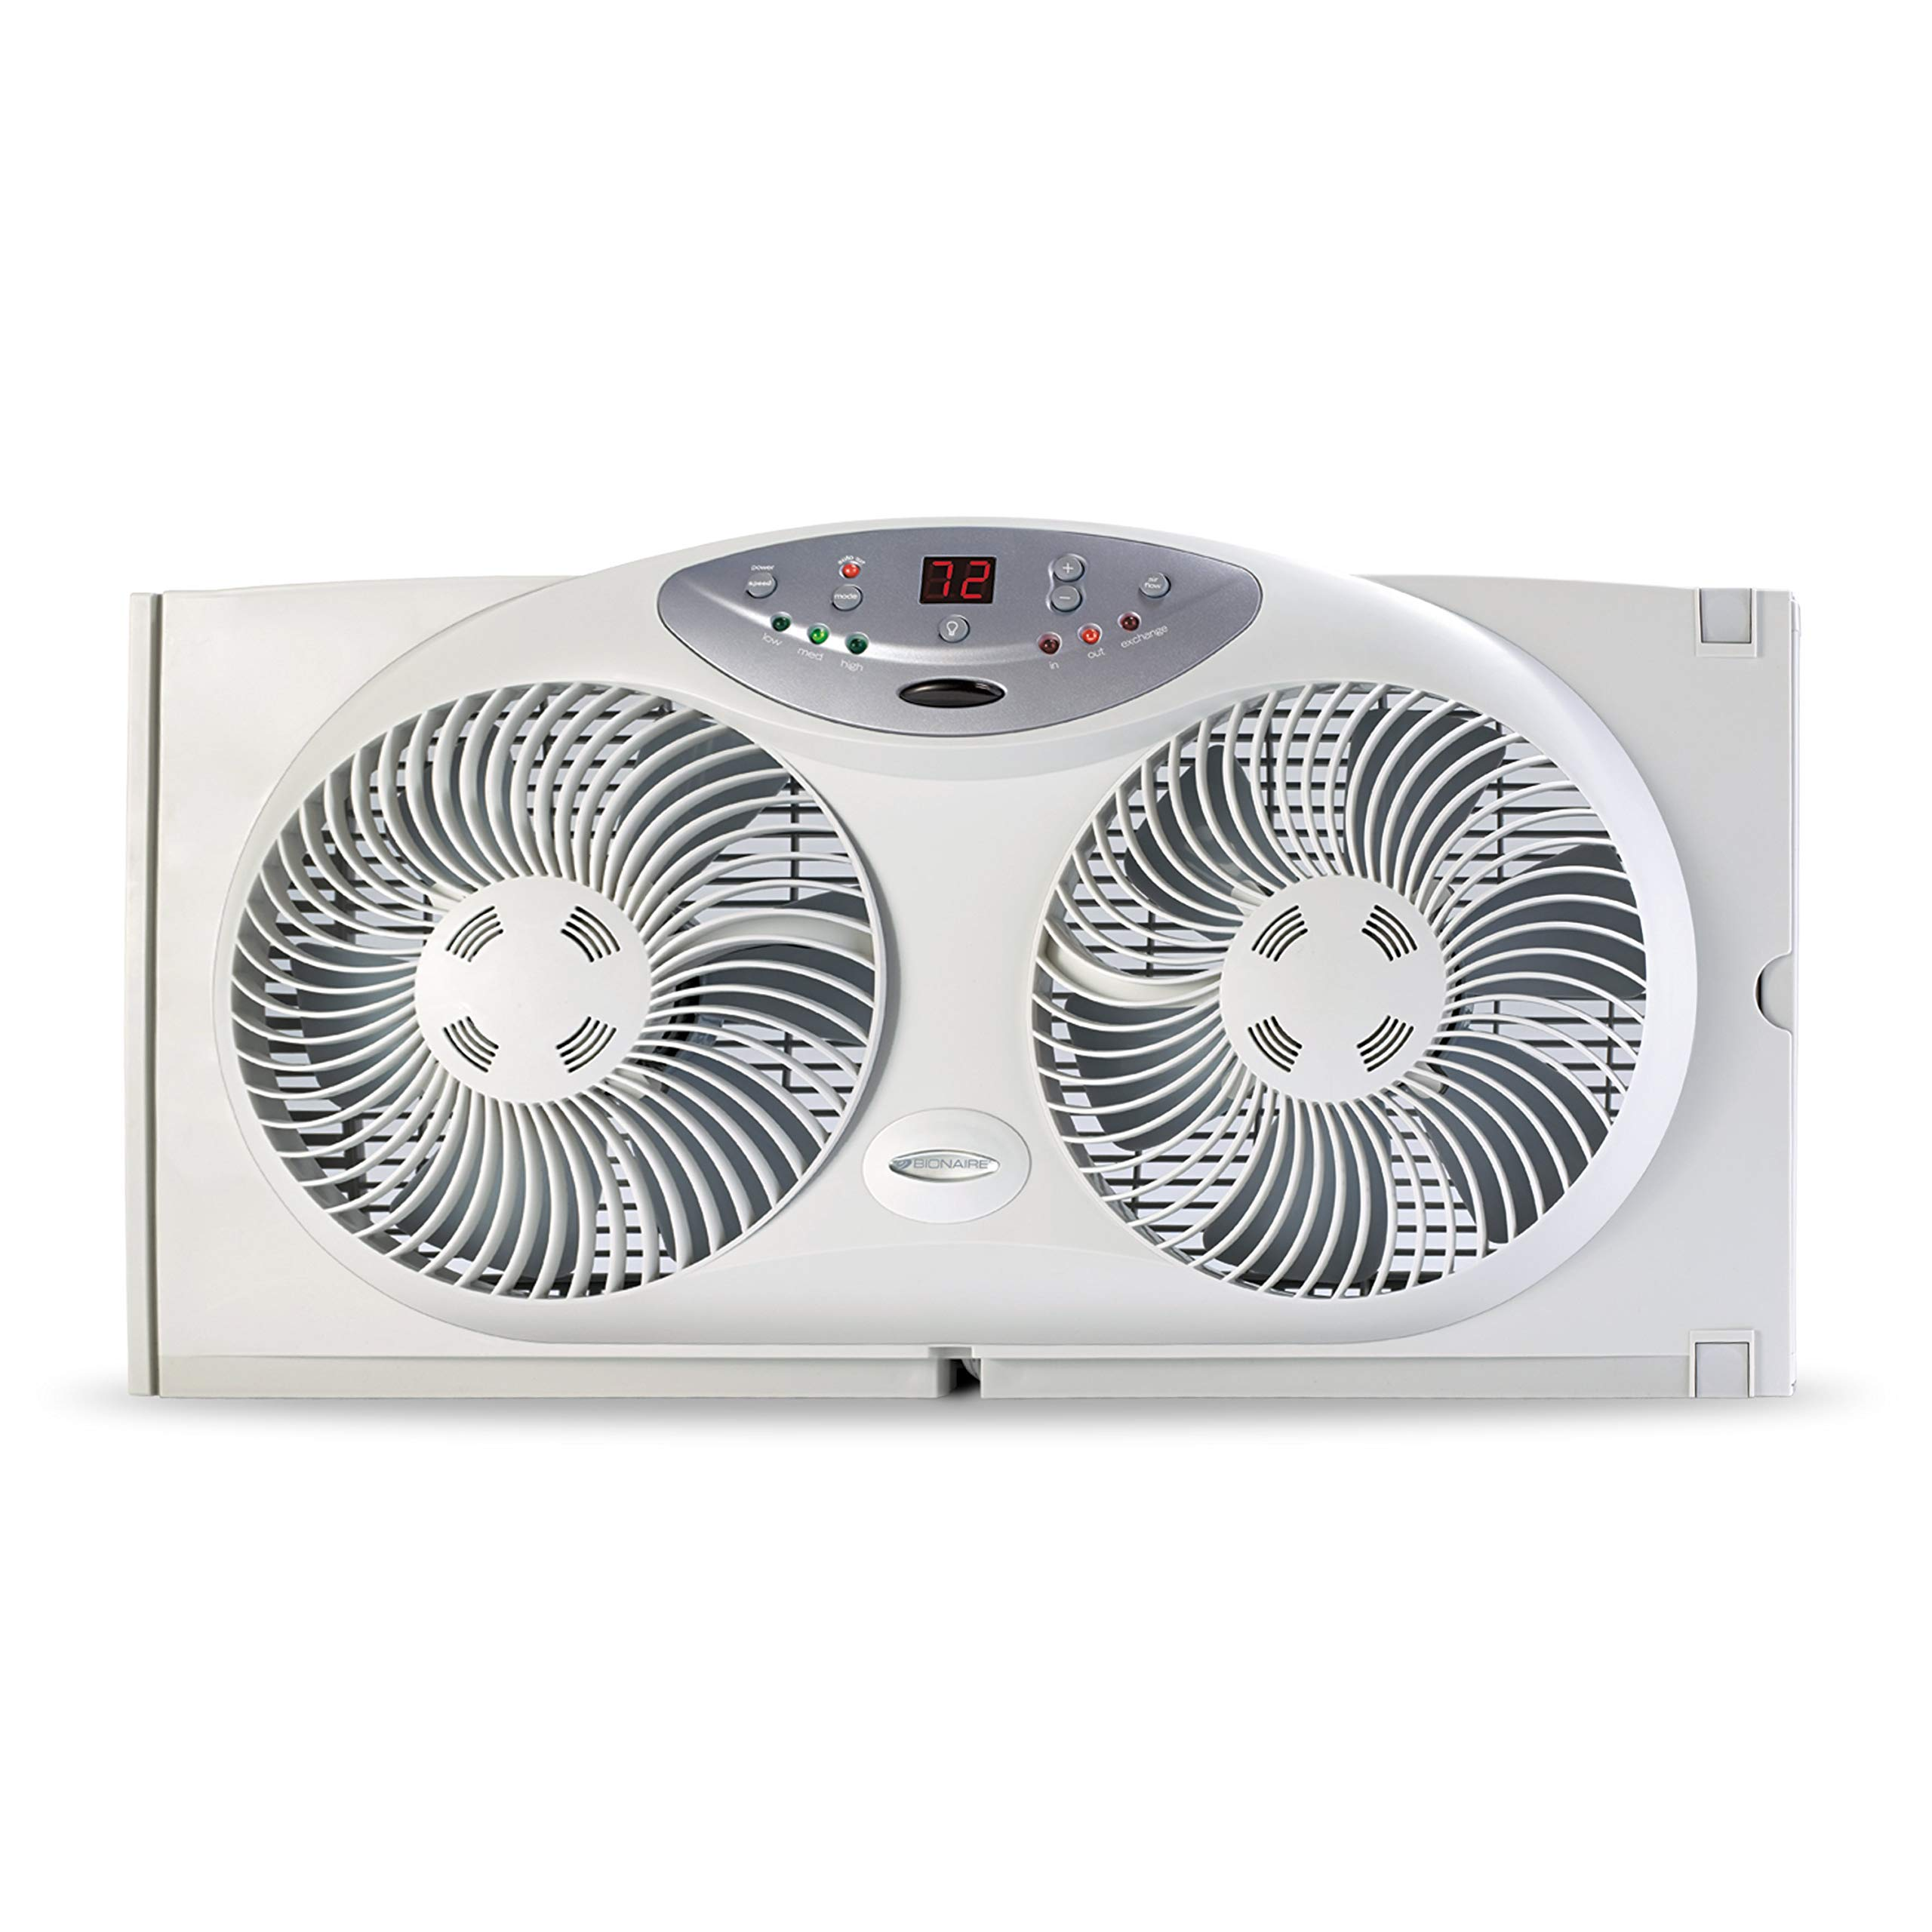 Bionaire BW2300-N Twin Reversible Airflow Window Fan with Remote Control (Renewed) by Bionaire